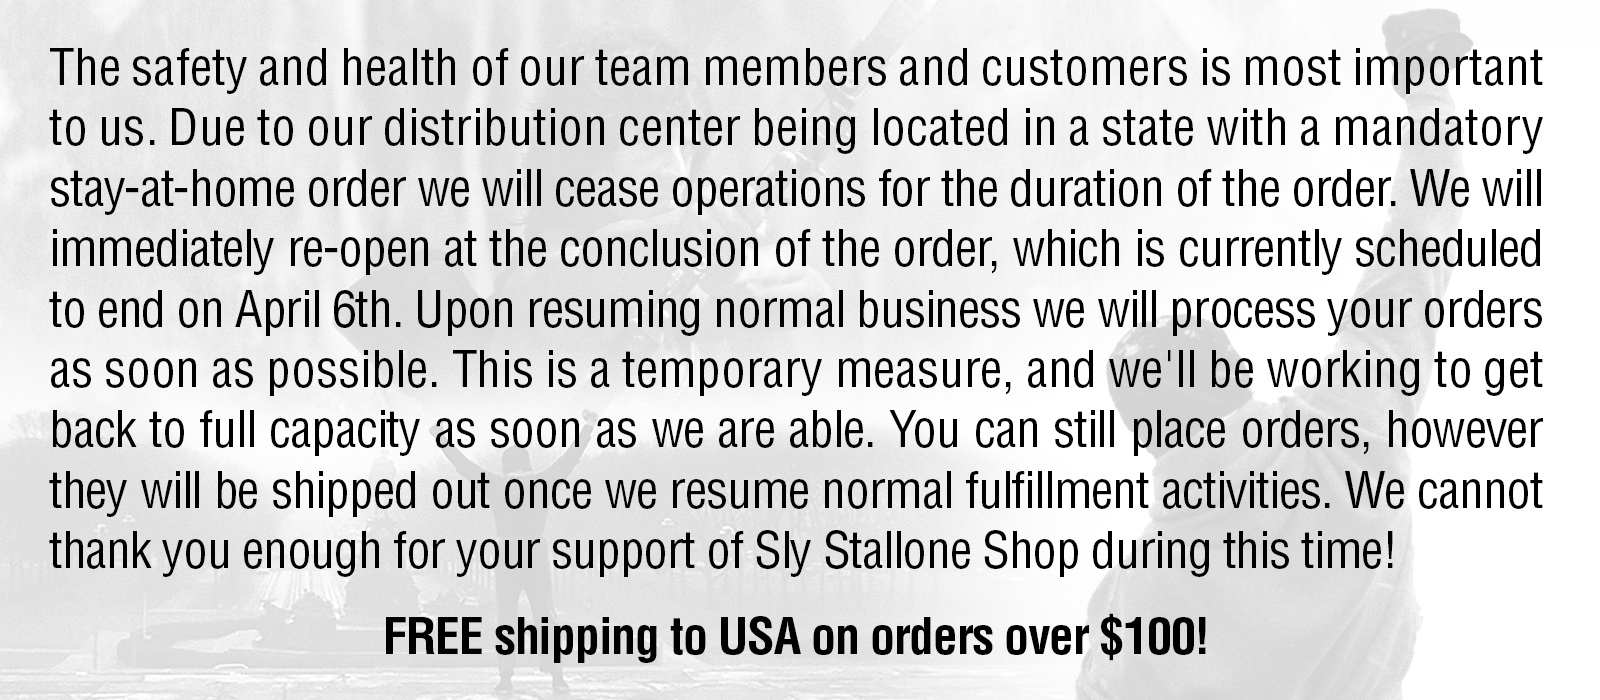 Sly Stallone Shop